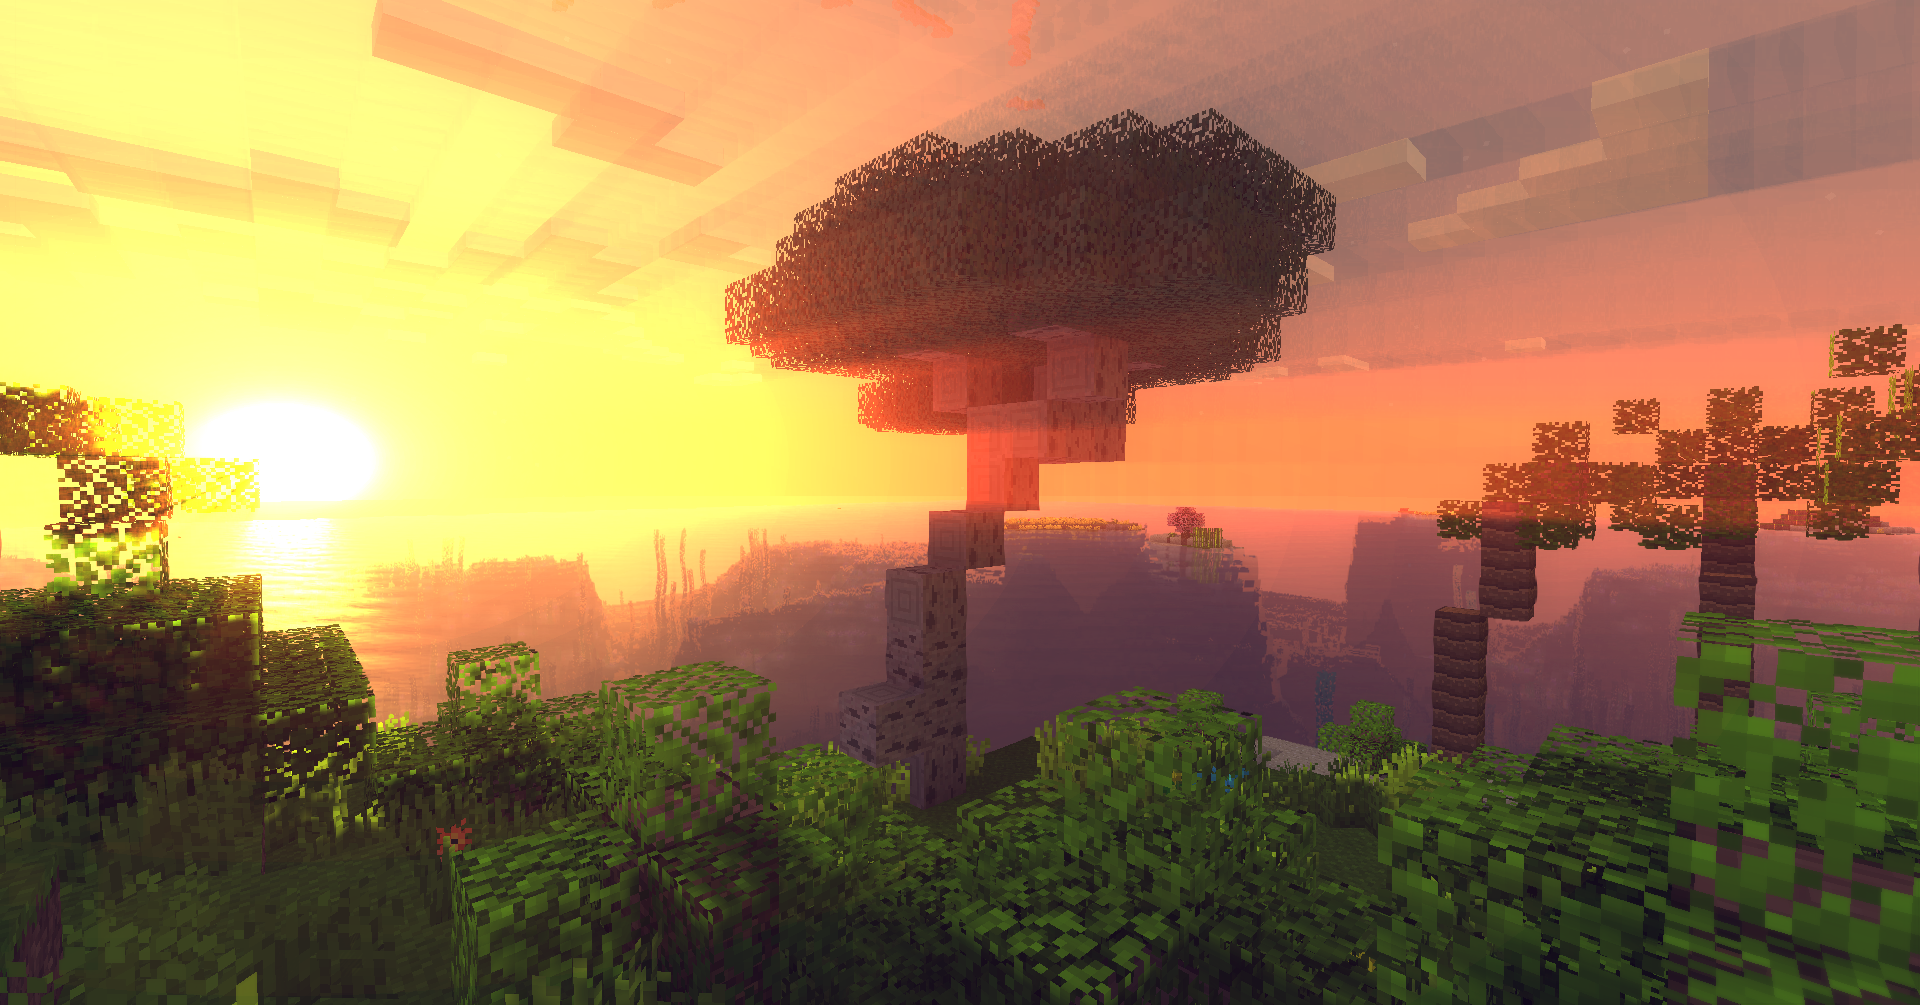 981271ee17b811876c08989cf56fa88f [1.7.10] Ancient Trees Mod Download